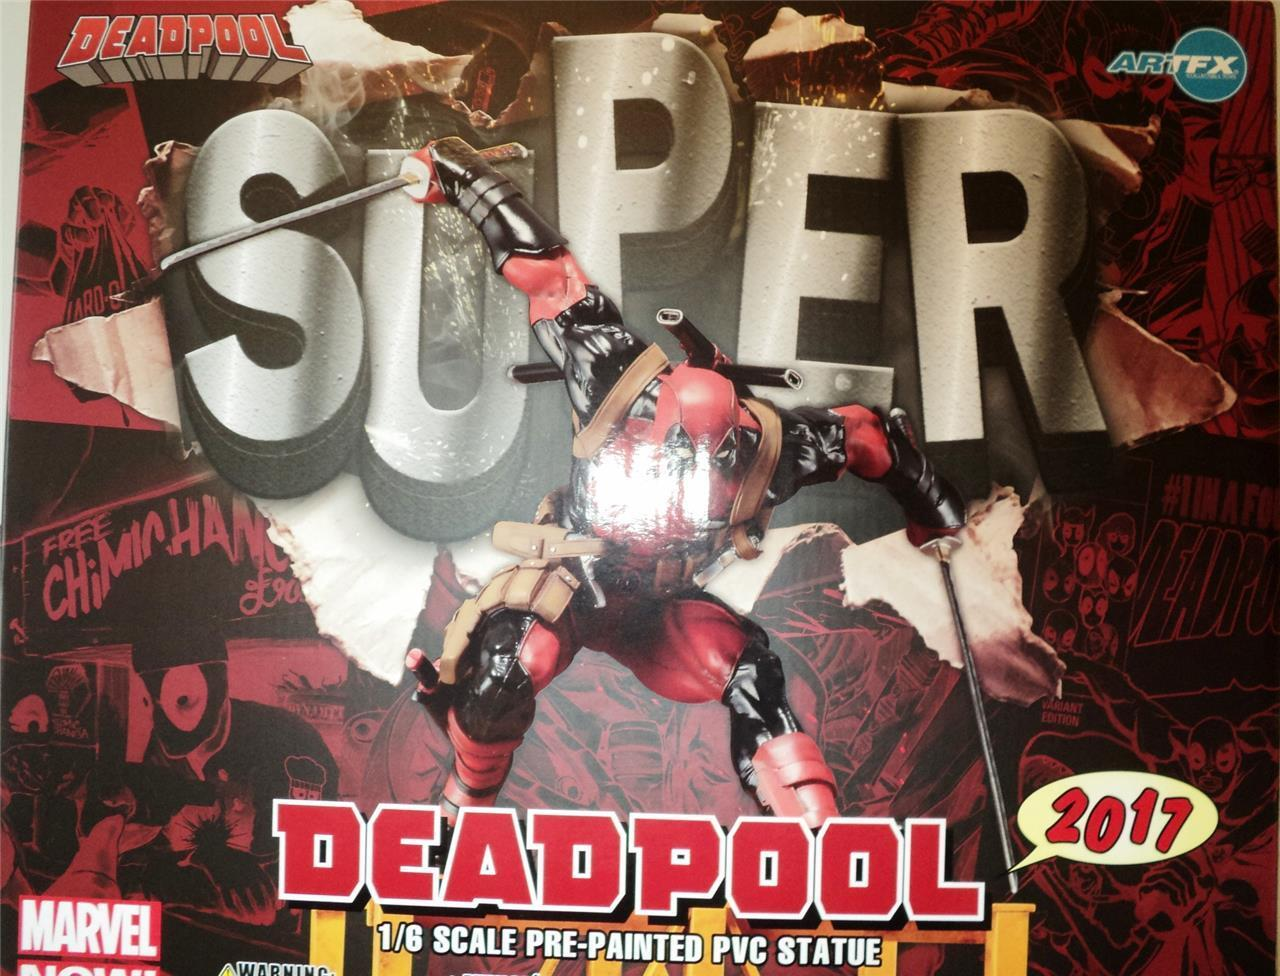 MARVEL NOW Super Deadpool ArtFX+ HUGE 43cm 1/6 scale Statue Kotobukiya MISB